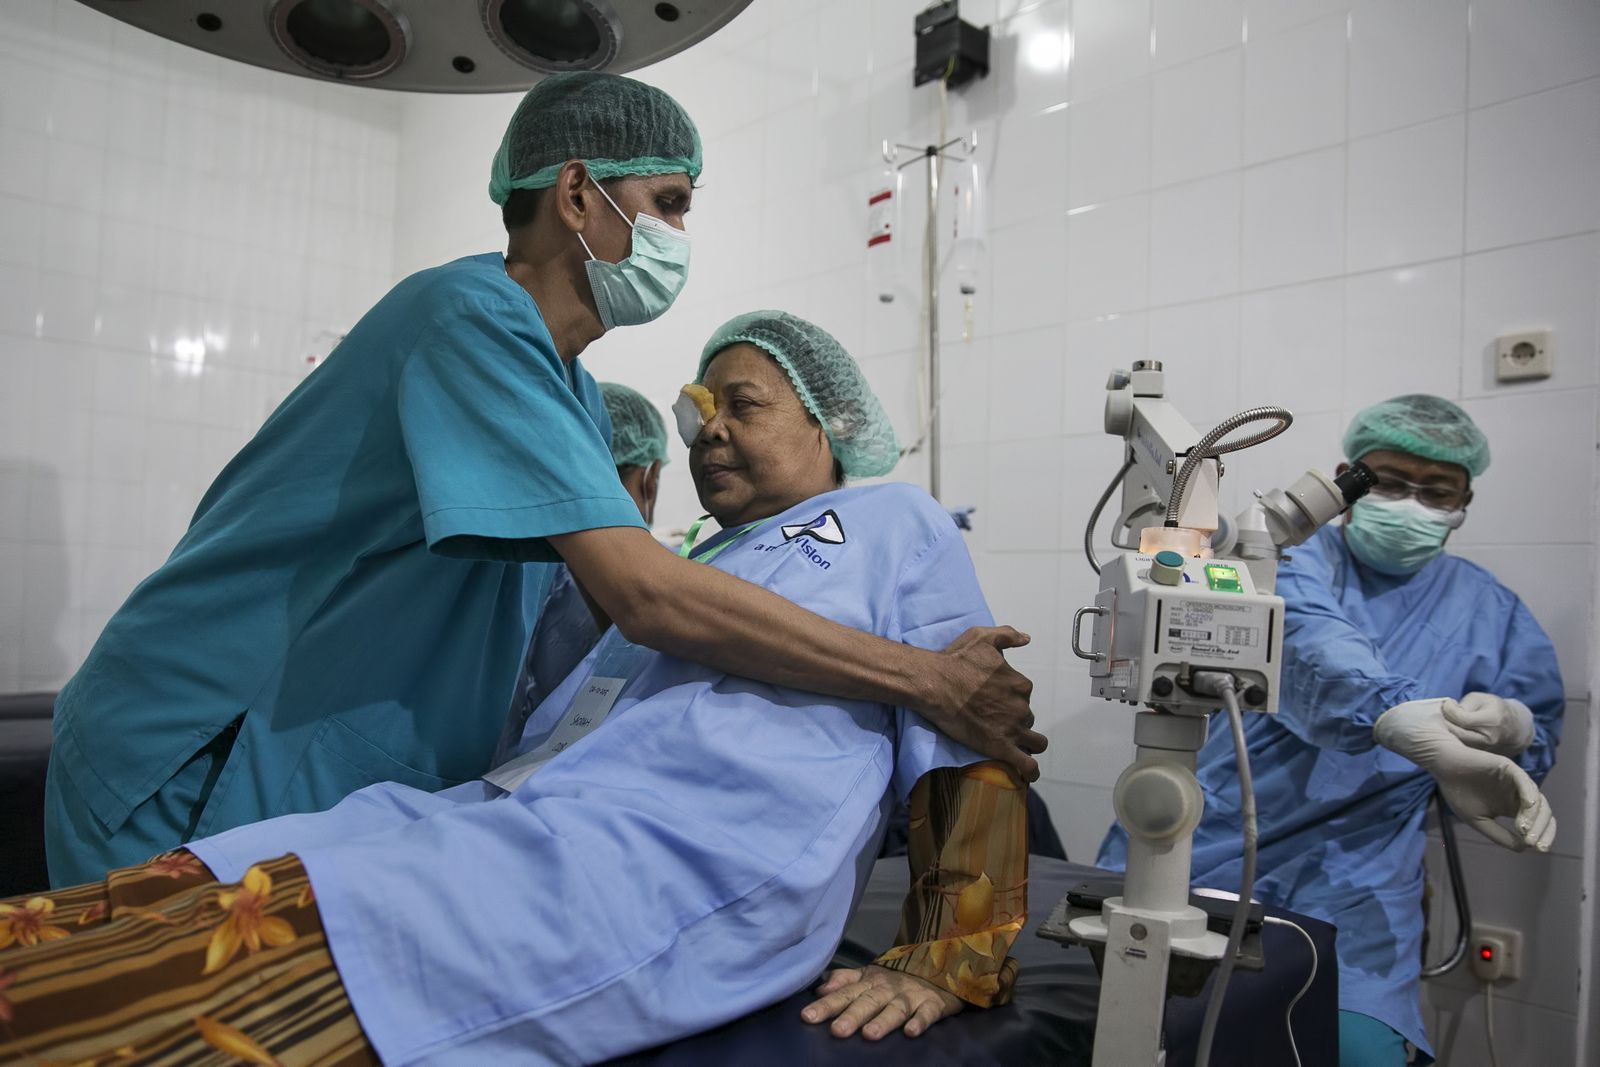 Cataract Surgery in Indonesia, March 2016